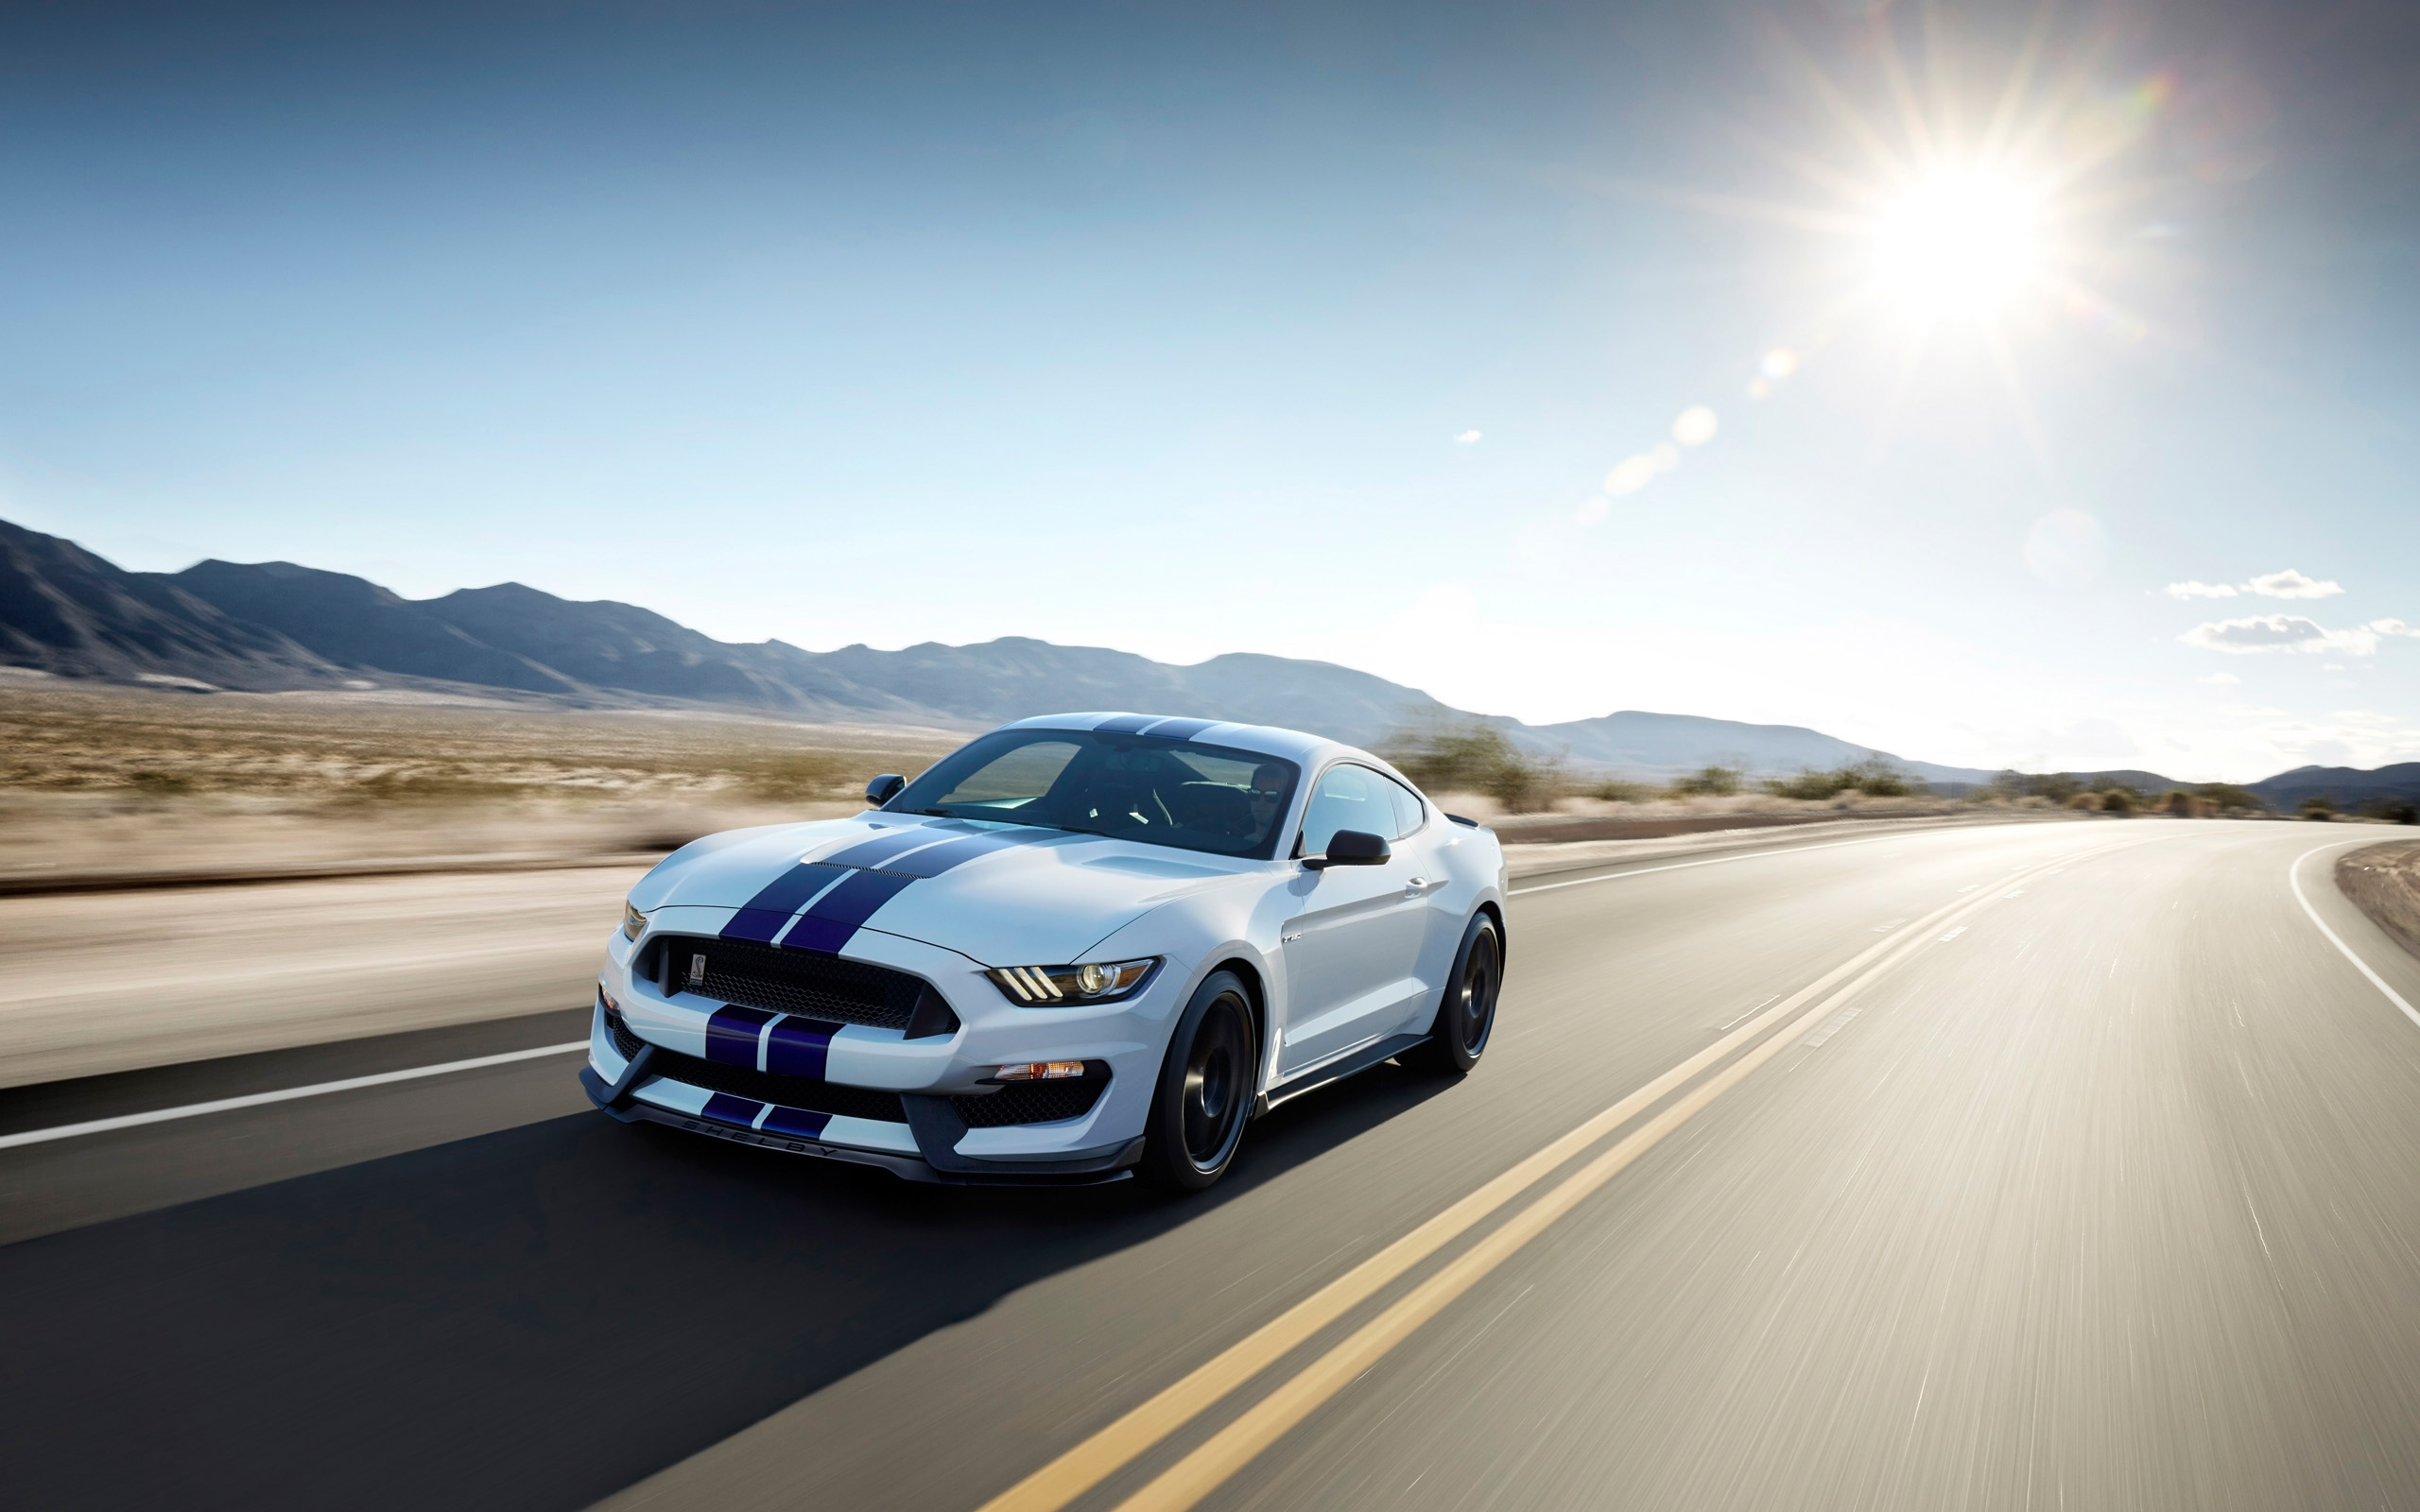 2015 Ford Shelby GT350 Mustang Desktop HD Wallpaper 2560x1600